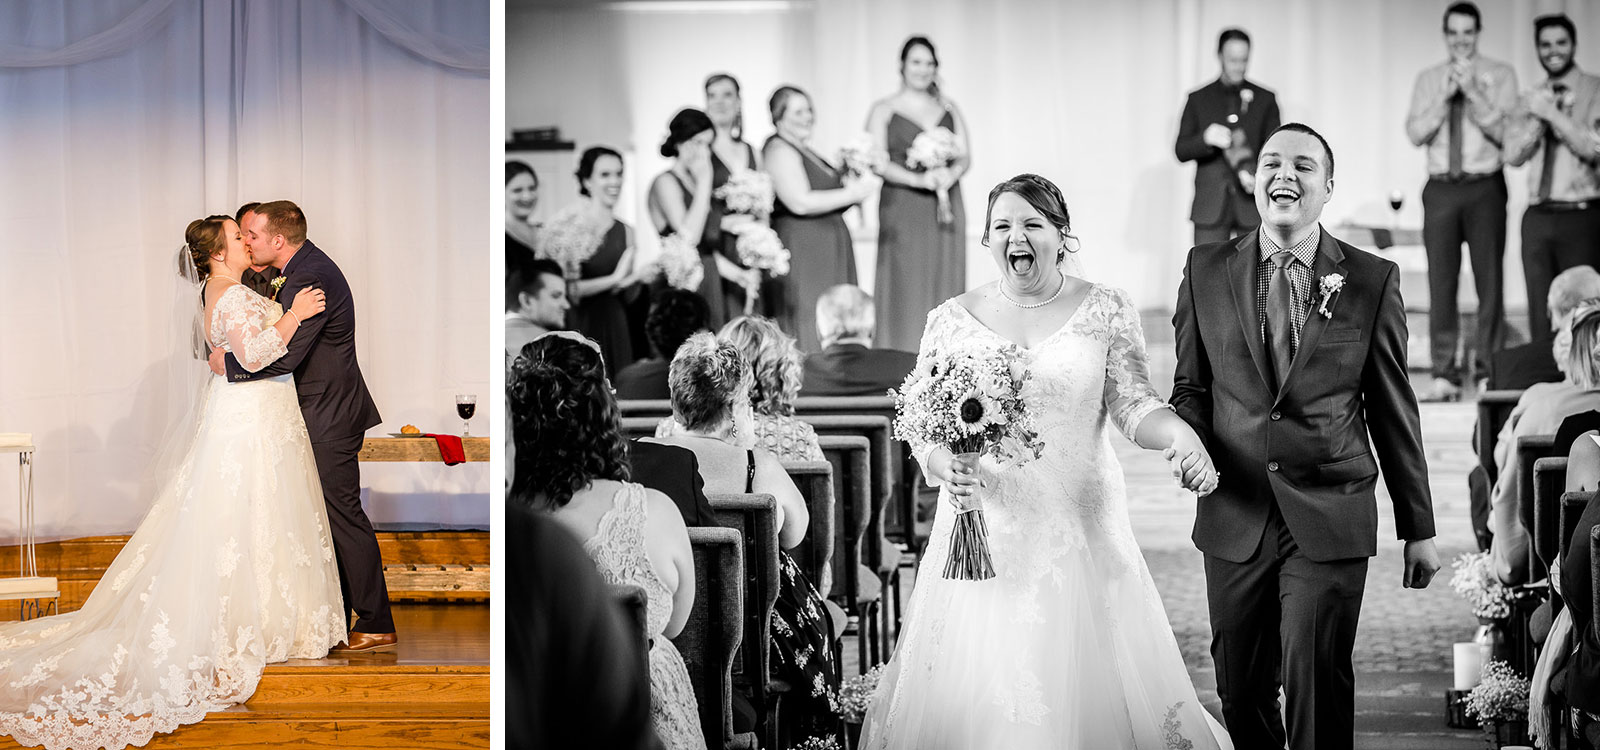 Eric_and_Christy_Photography_Blog_Wedding_Stacey_Geoff-17-18